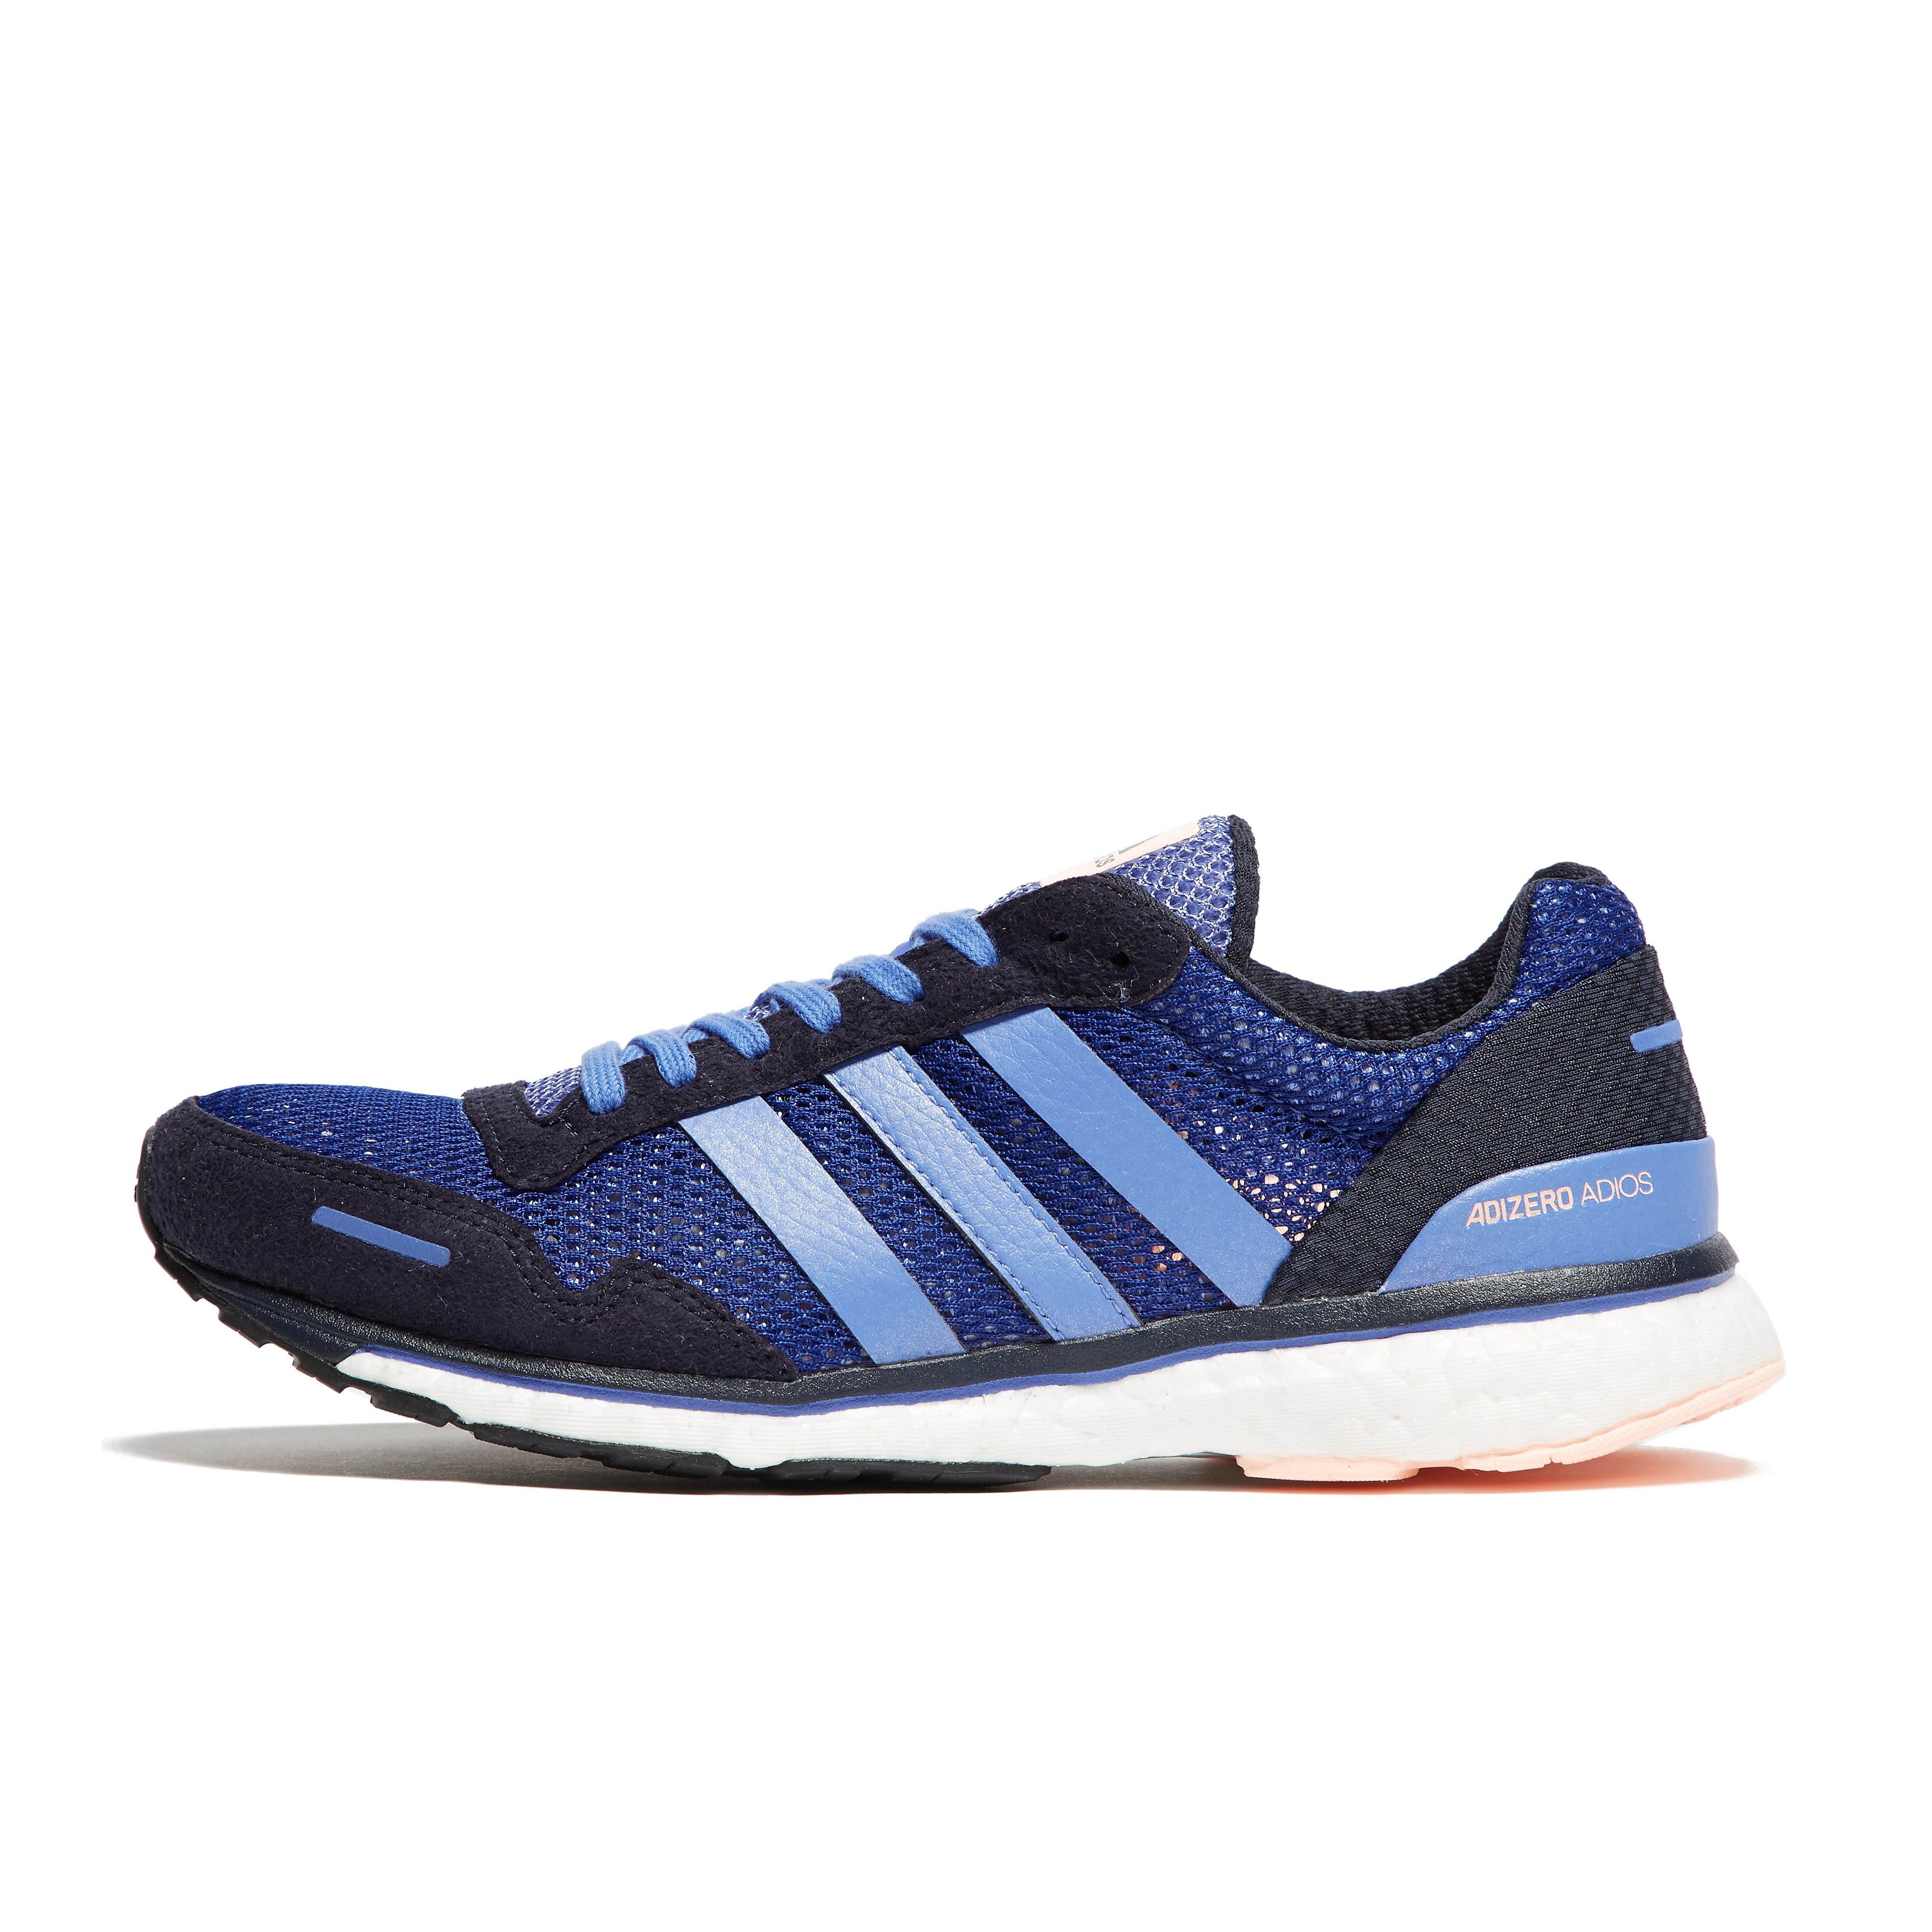 Womens Navy blue adidas Adizero Adios 3 Running Shoes